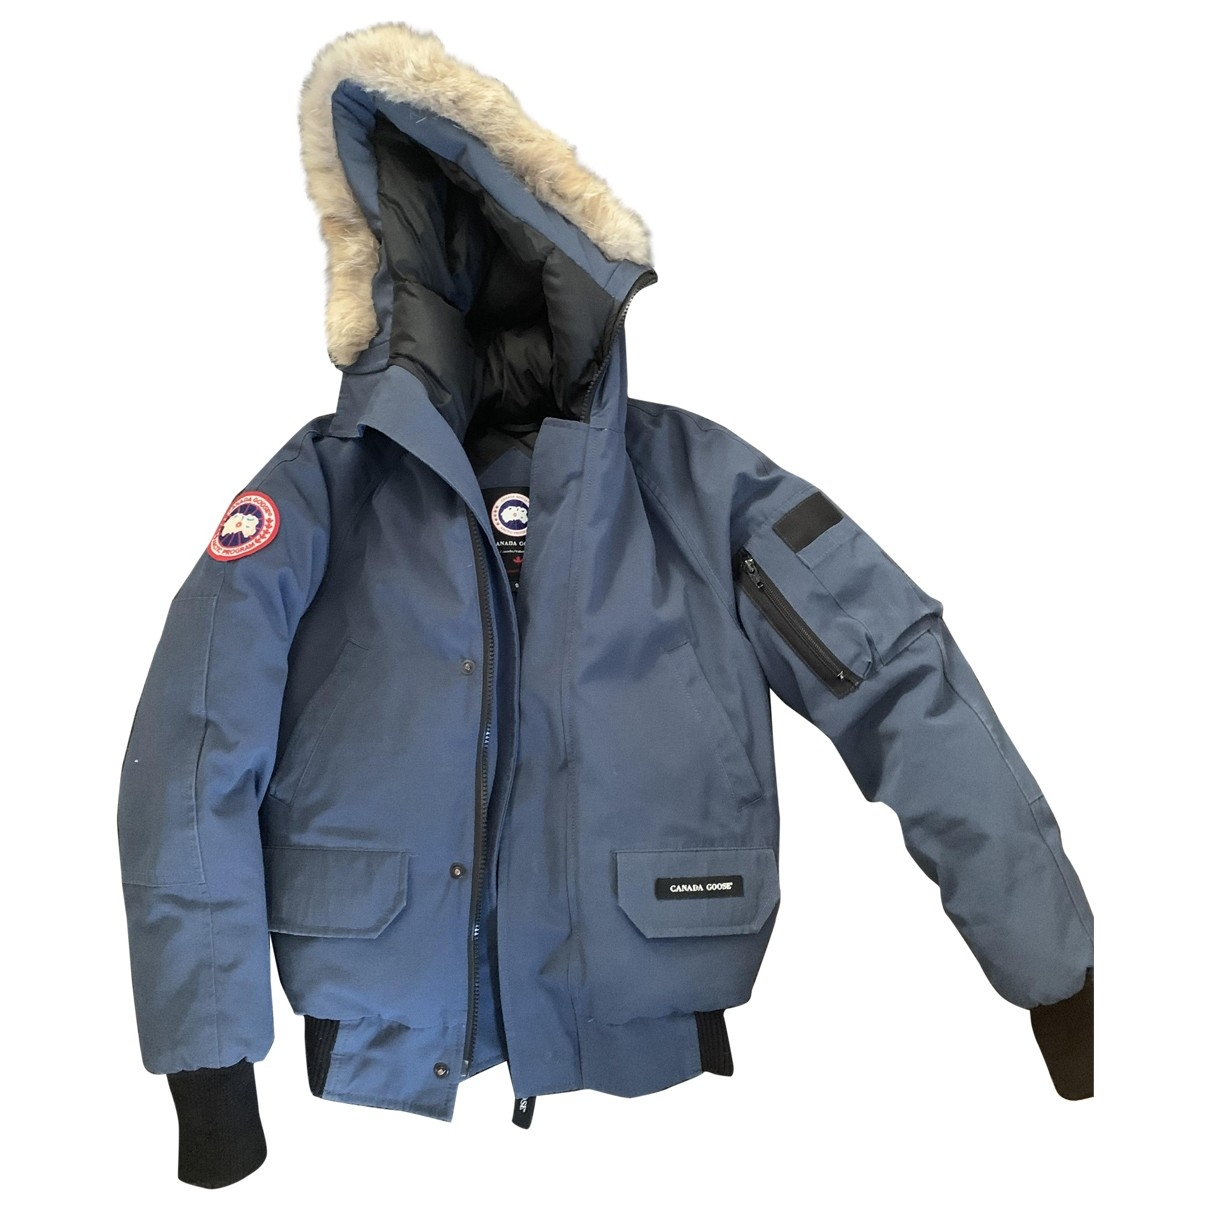 Canada Goose \N Blue jacket & coat for Kids 14 years - S FR